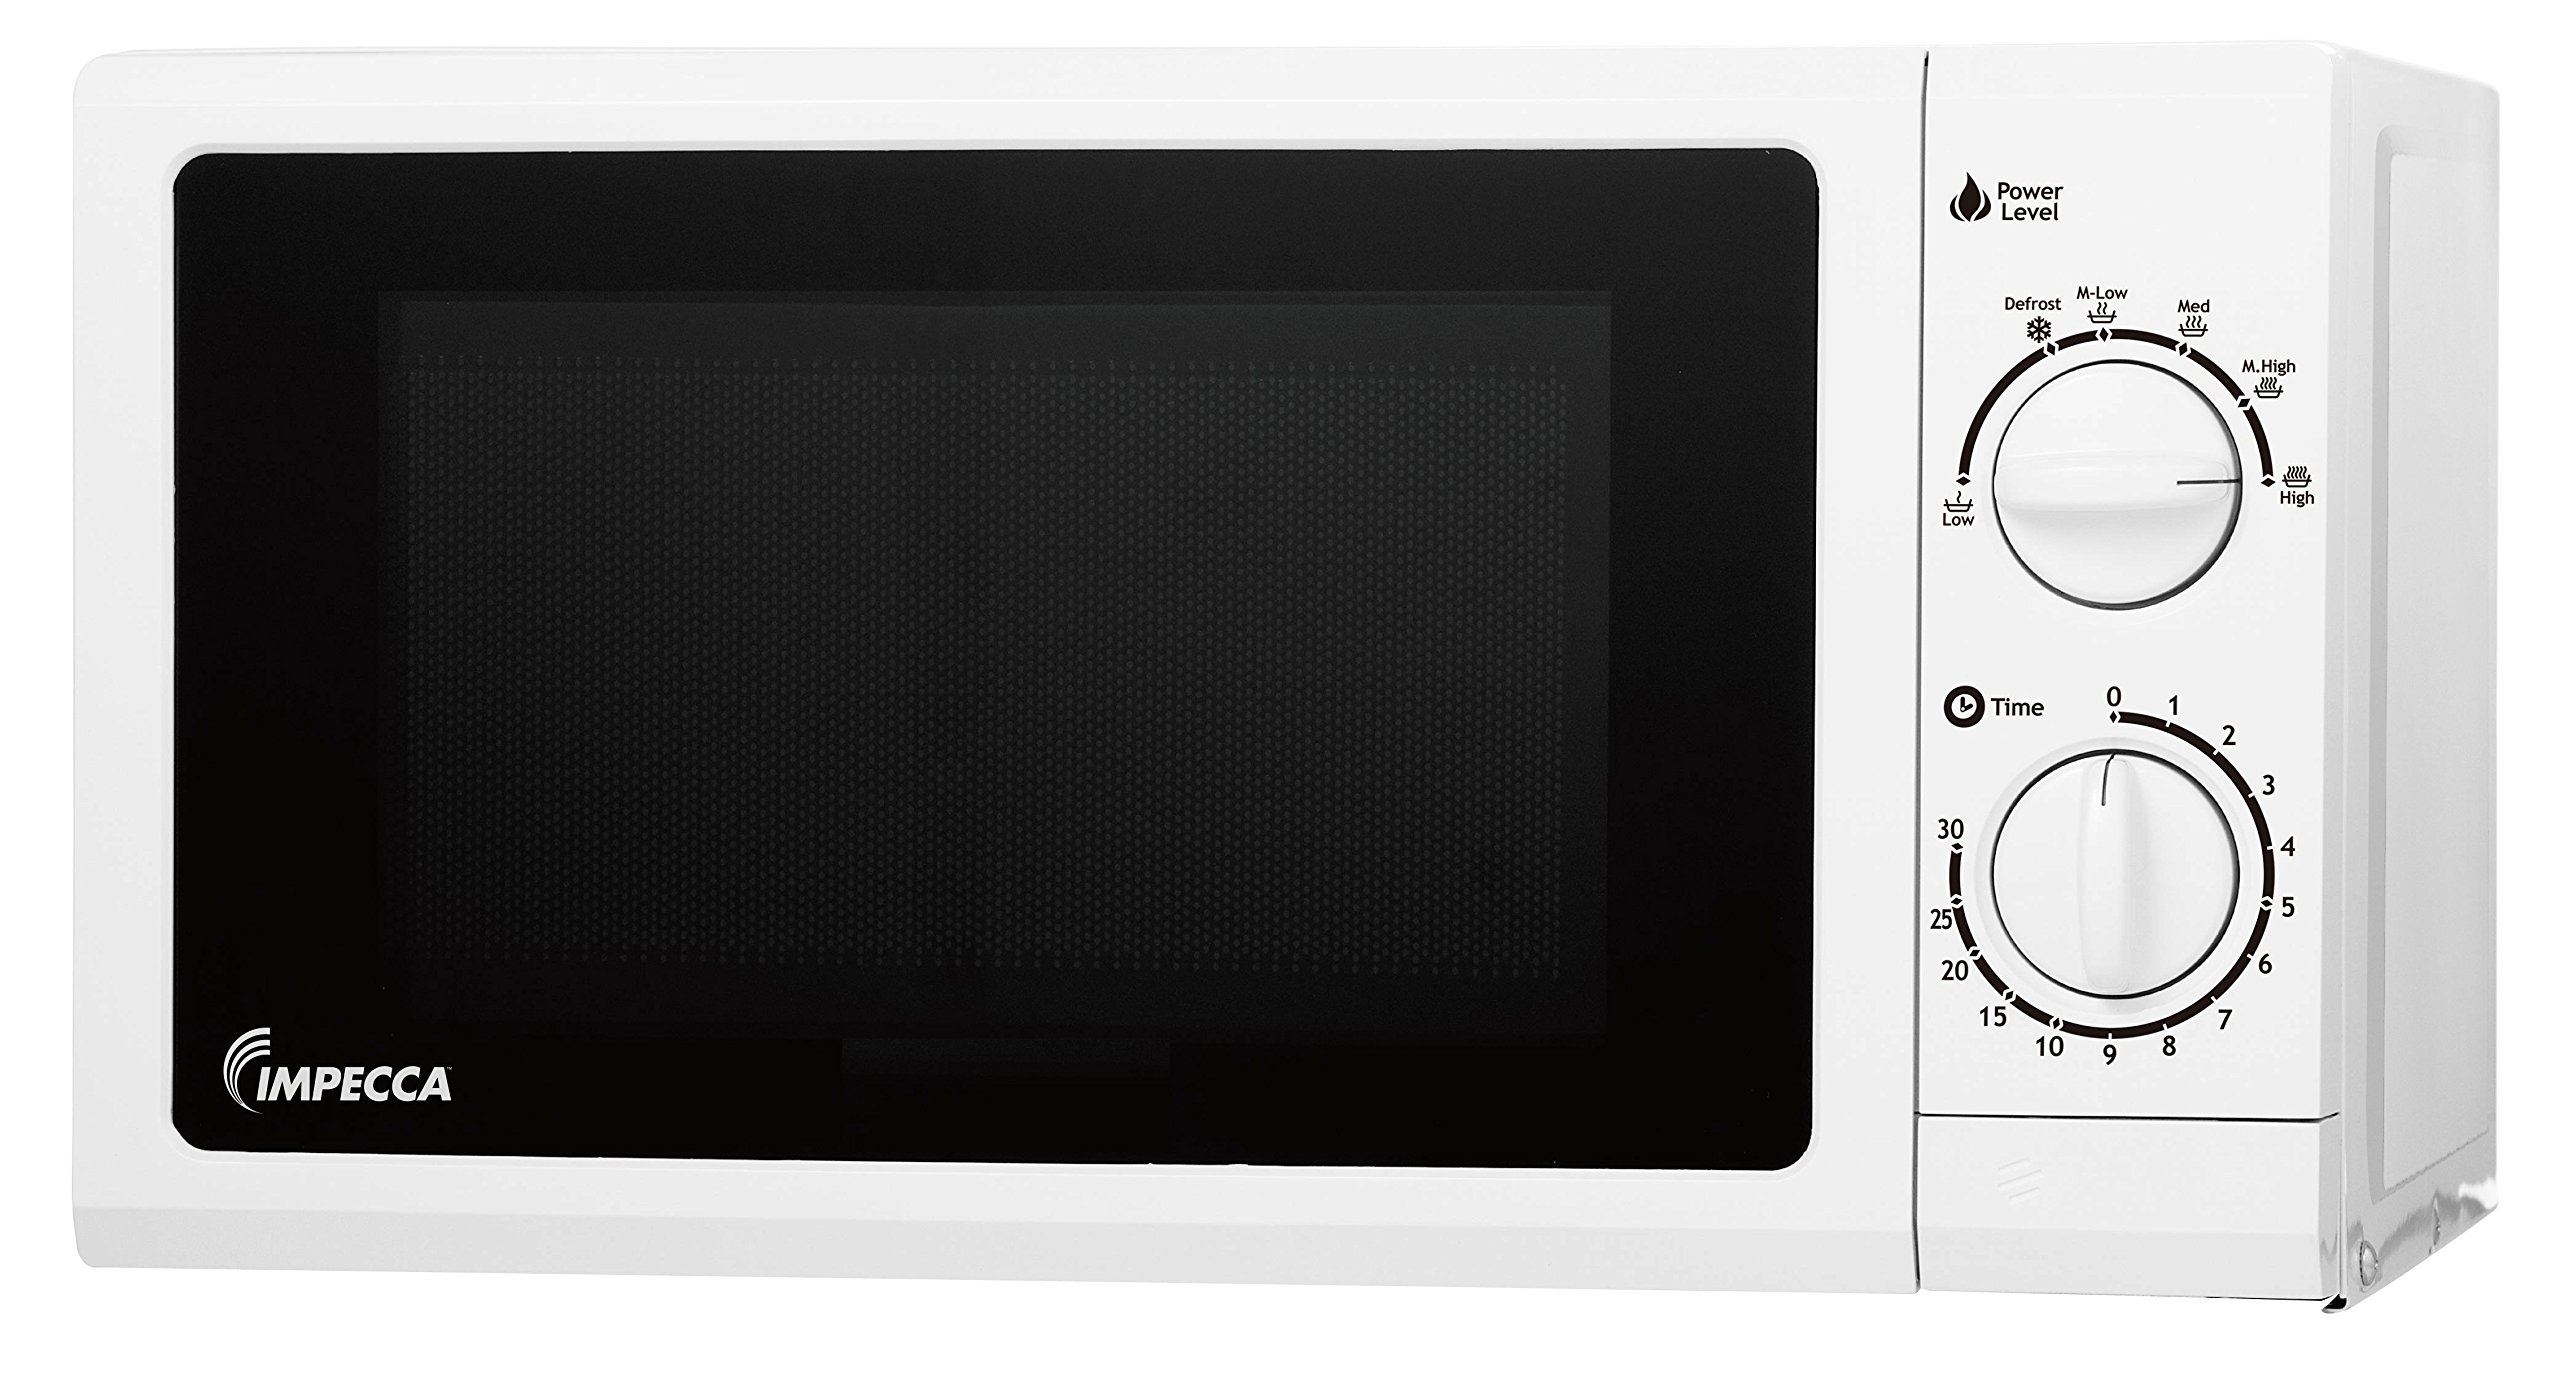 Impecca 700 Watts Lightweight Microwave Oven -120v 0.6 Cubic Feet Countertop Microwave Oven, White Digital Microwave (White)